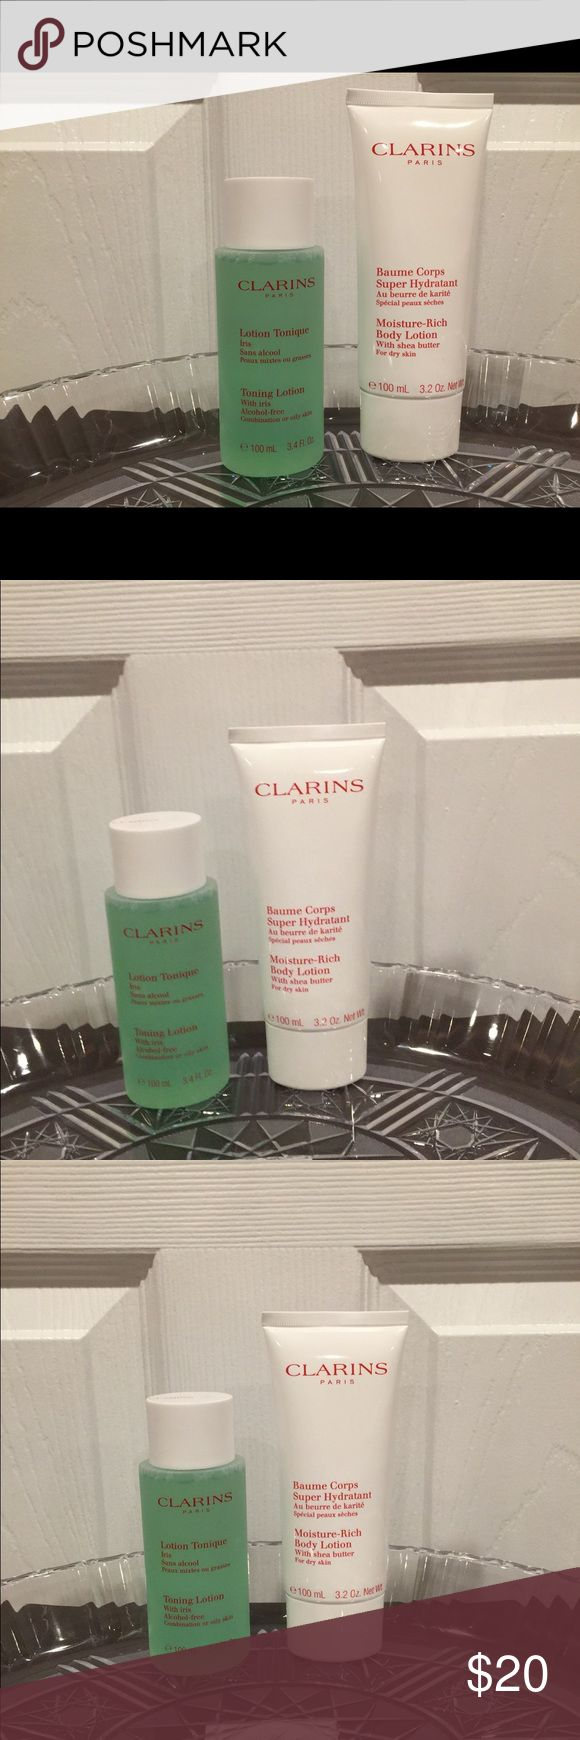 🆕🔥2. Pc Clarins Body kit!! Brand New! 🔥🆕 Toning Lotion Combination or Oily skin,  3.4 Oz,   Moisturizer Rich body Lotion 3.2 Oz clarins Makeup Face Primer